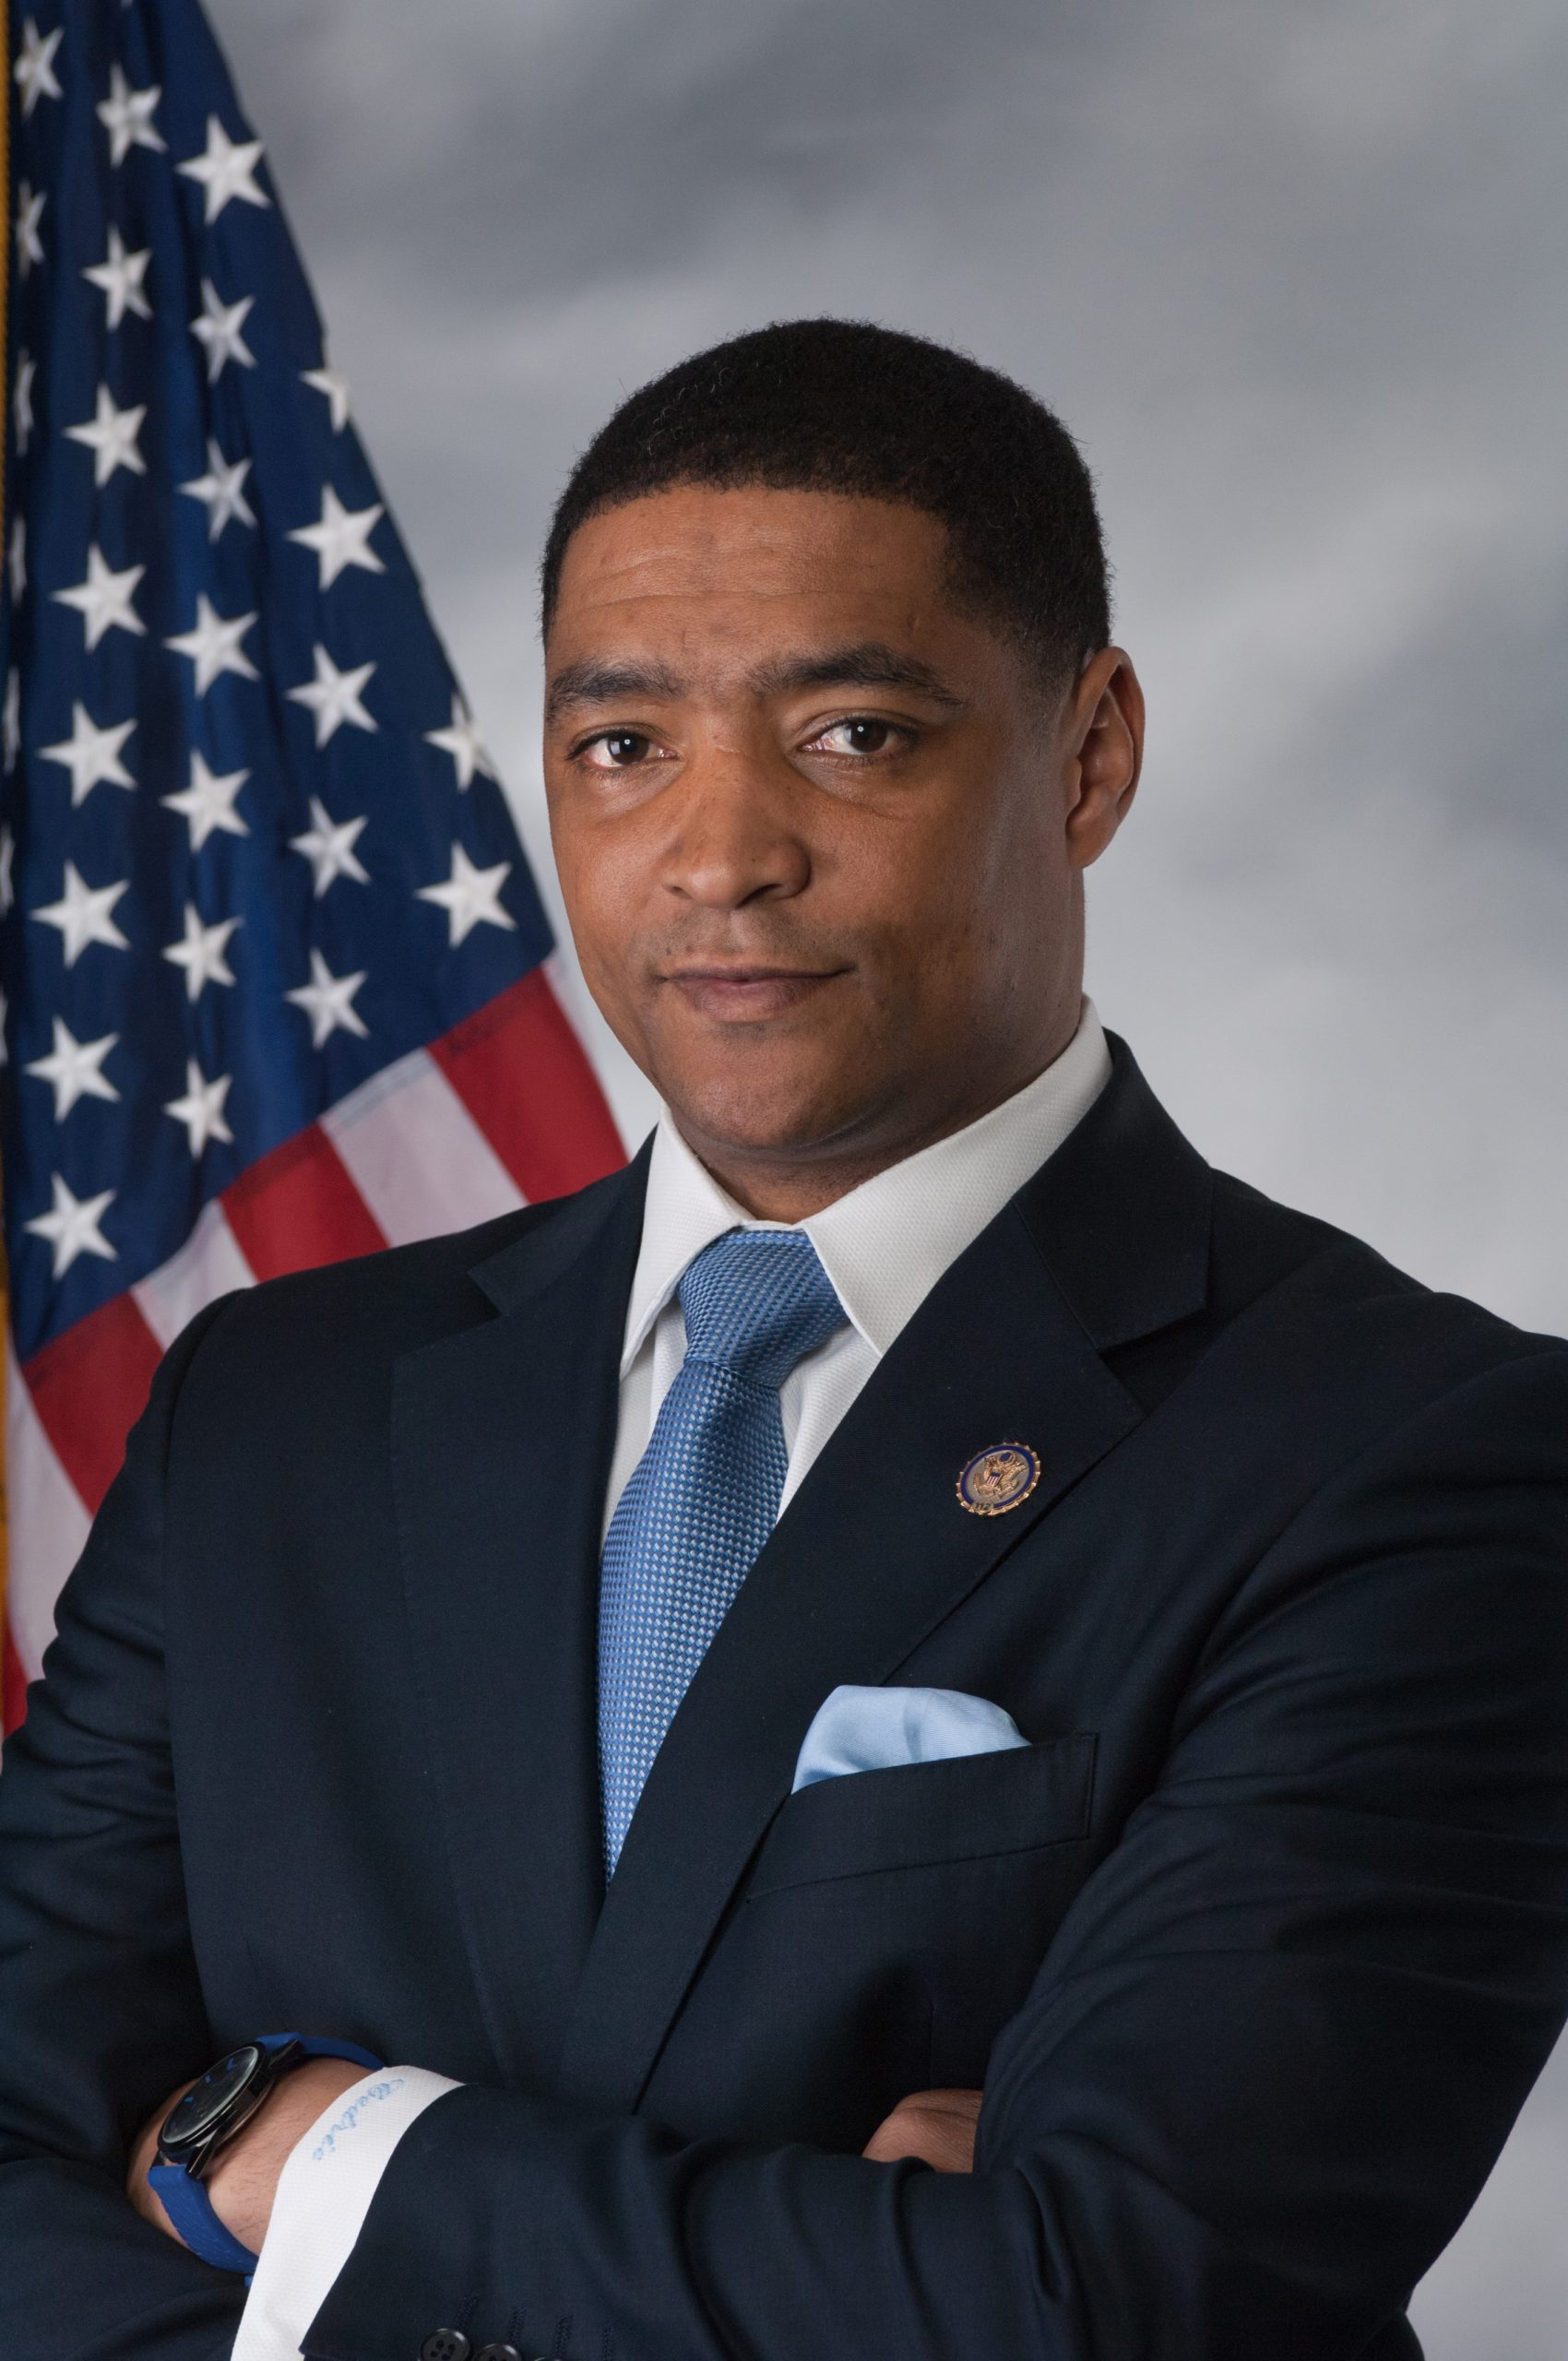 A portrait of Cedric Richmond in front of an American flag